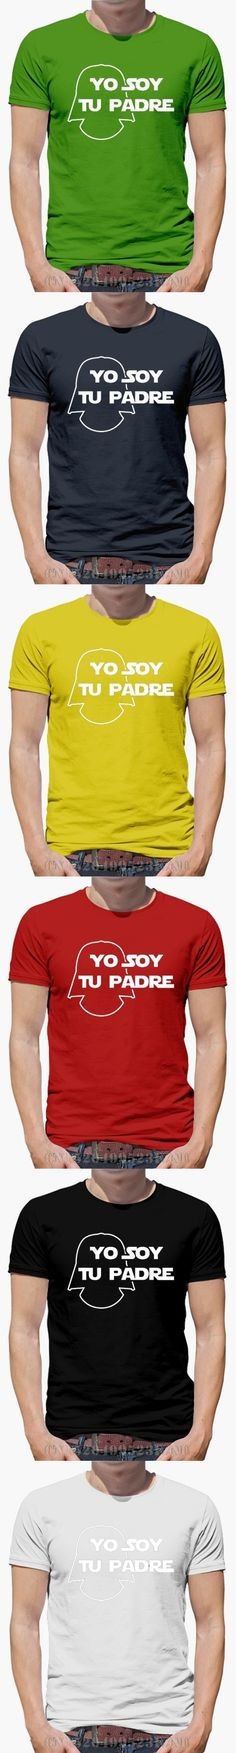 Spring New Arrivals men t shirts Yo soy tu padre Short Casual Knitted anime S-XXXL